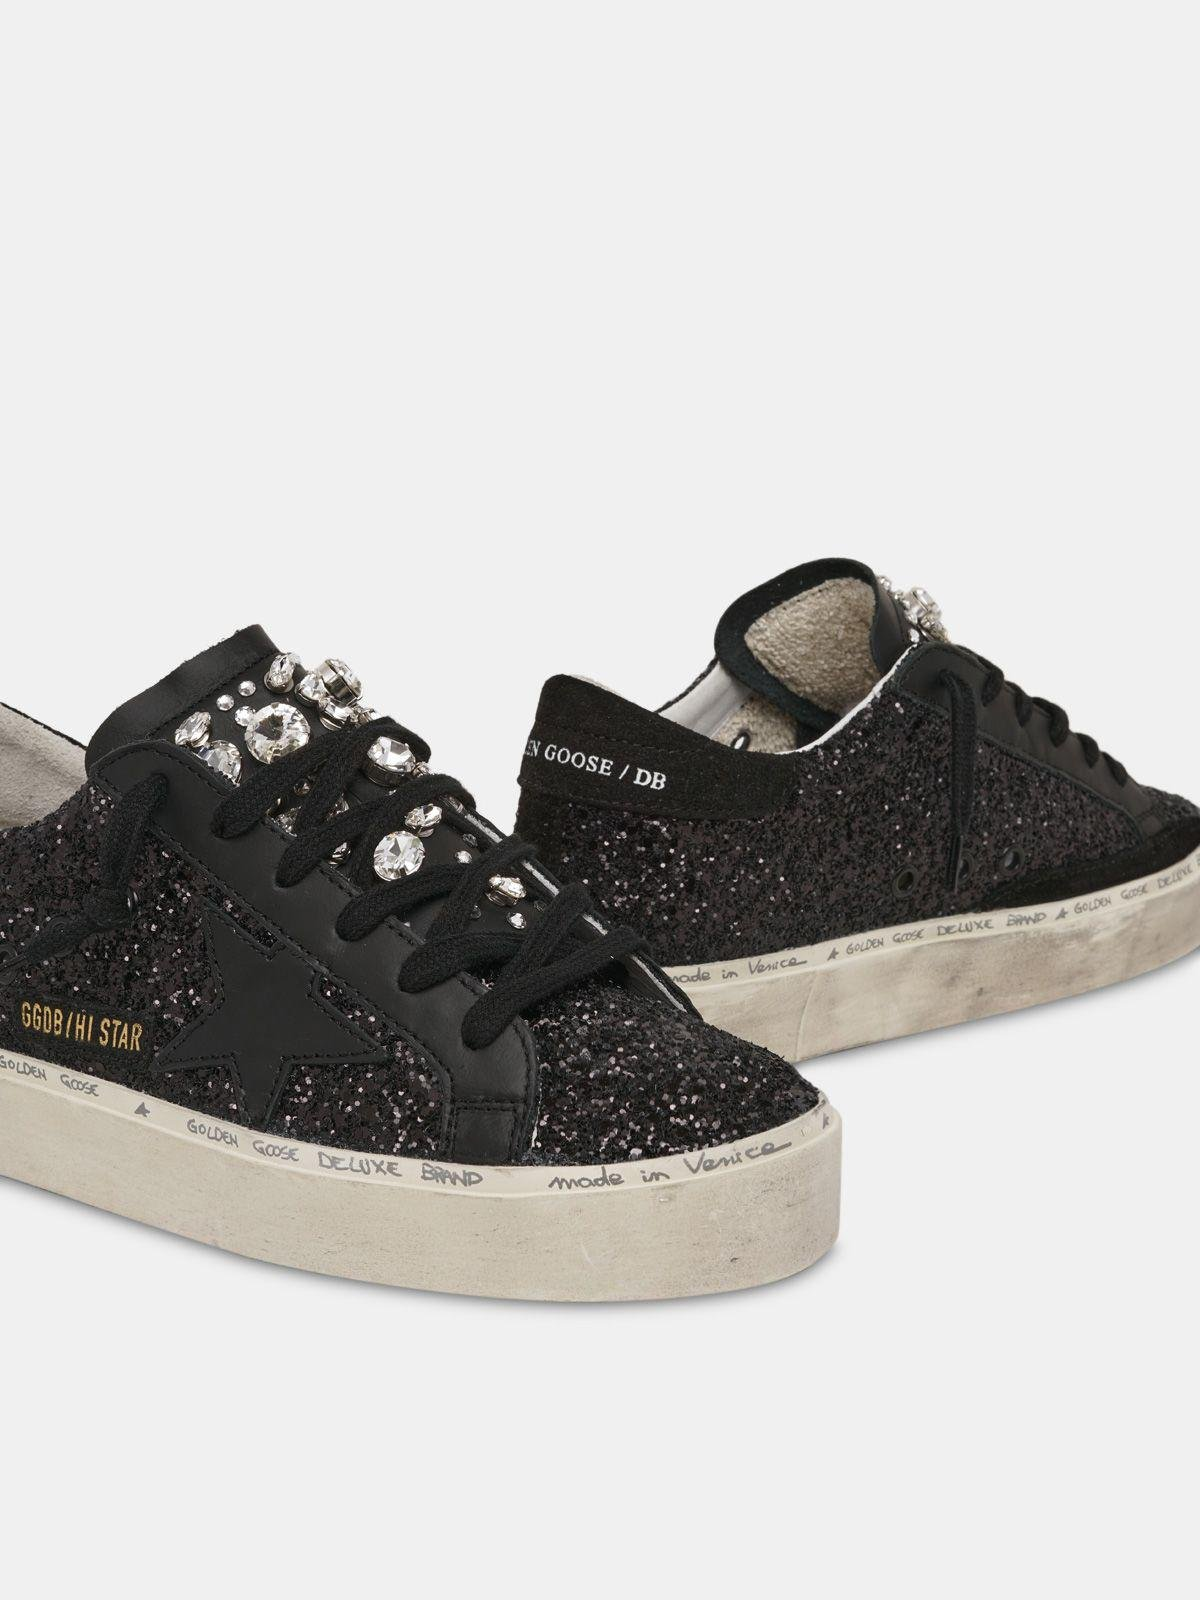 Limited Edition Hi Star sneakers with black glitter and crystals on the tongue 3